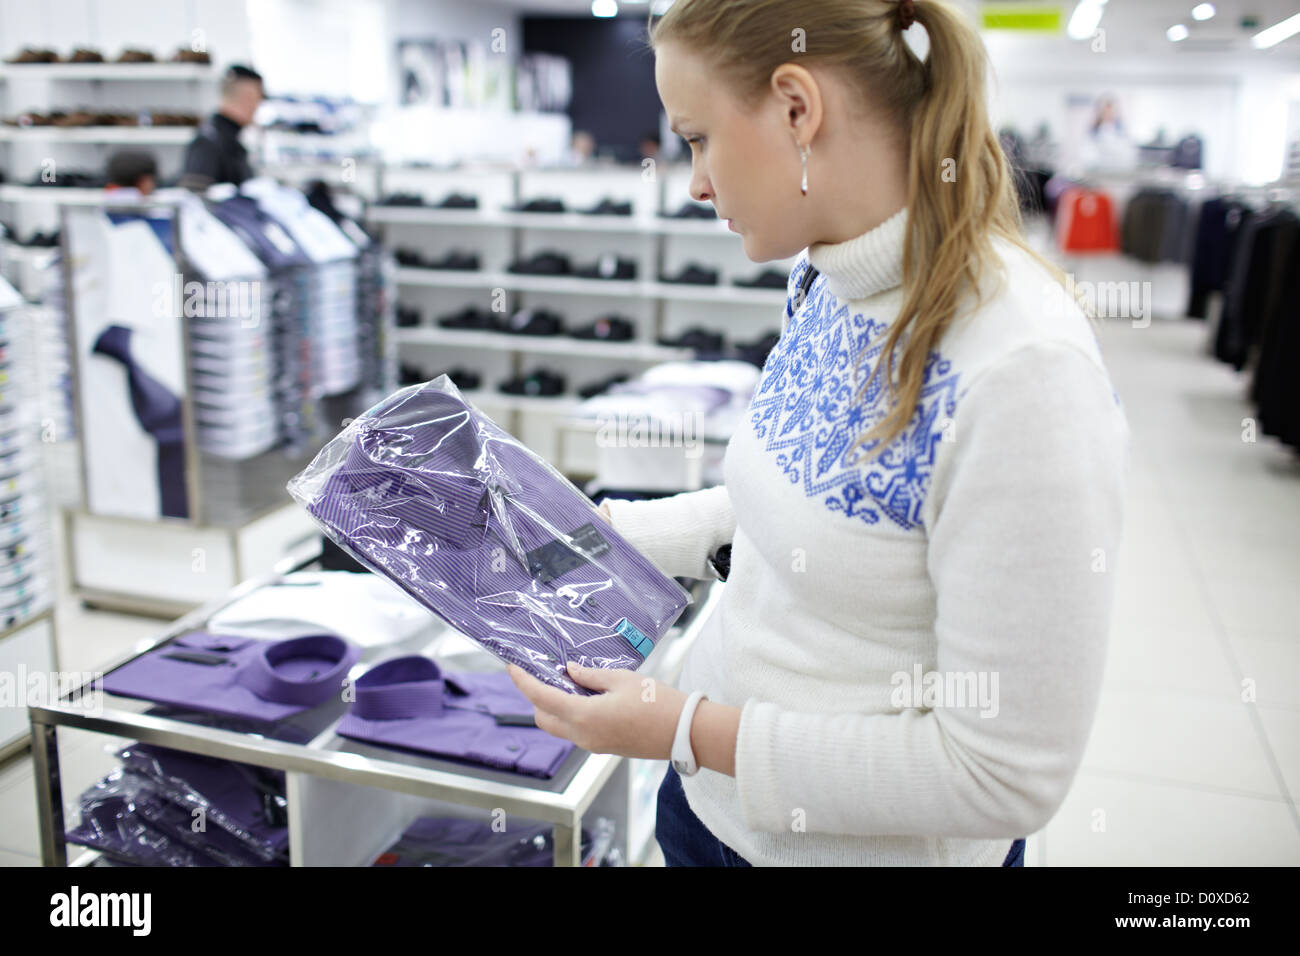 Woman with shirt in her hands. - Stock Image